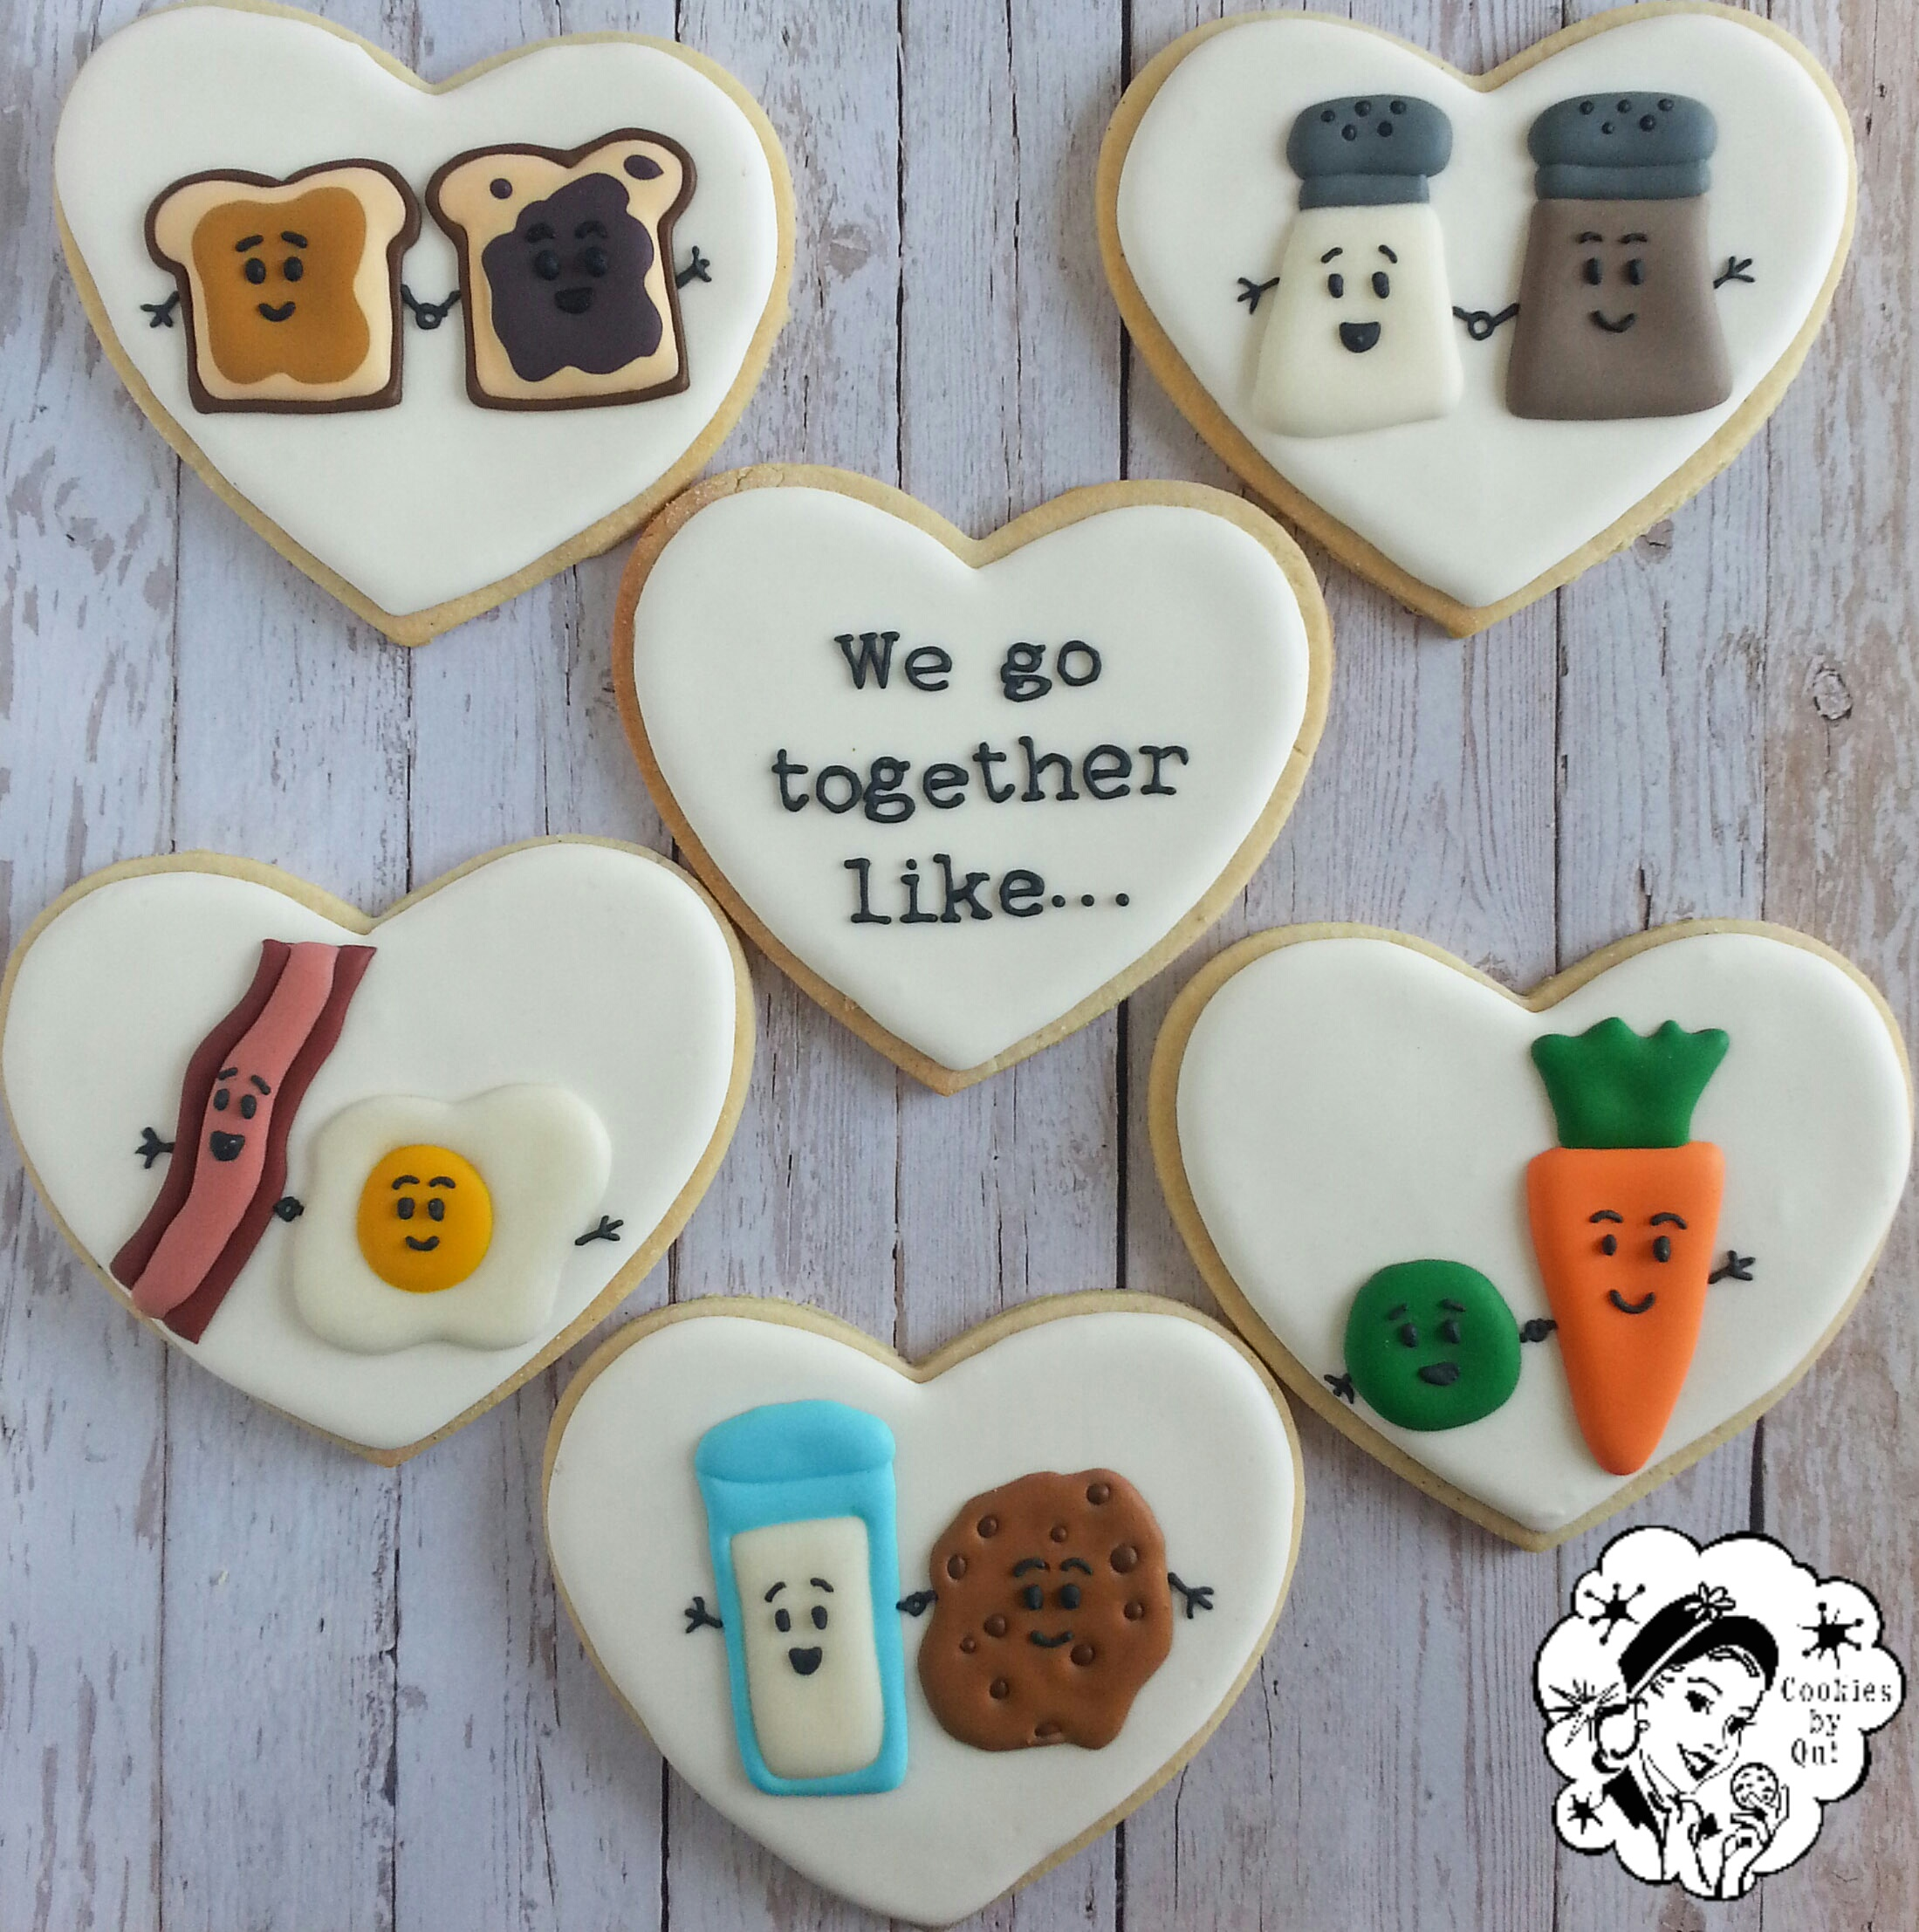 We Go Together Like...Valentine's Day Anniversary Cookies - Cookies by Qui Geelong